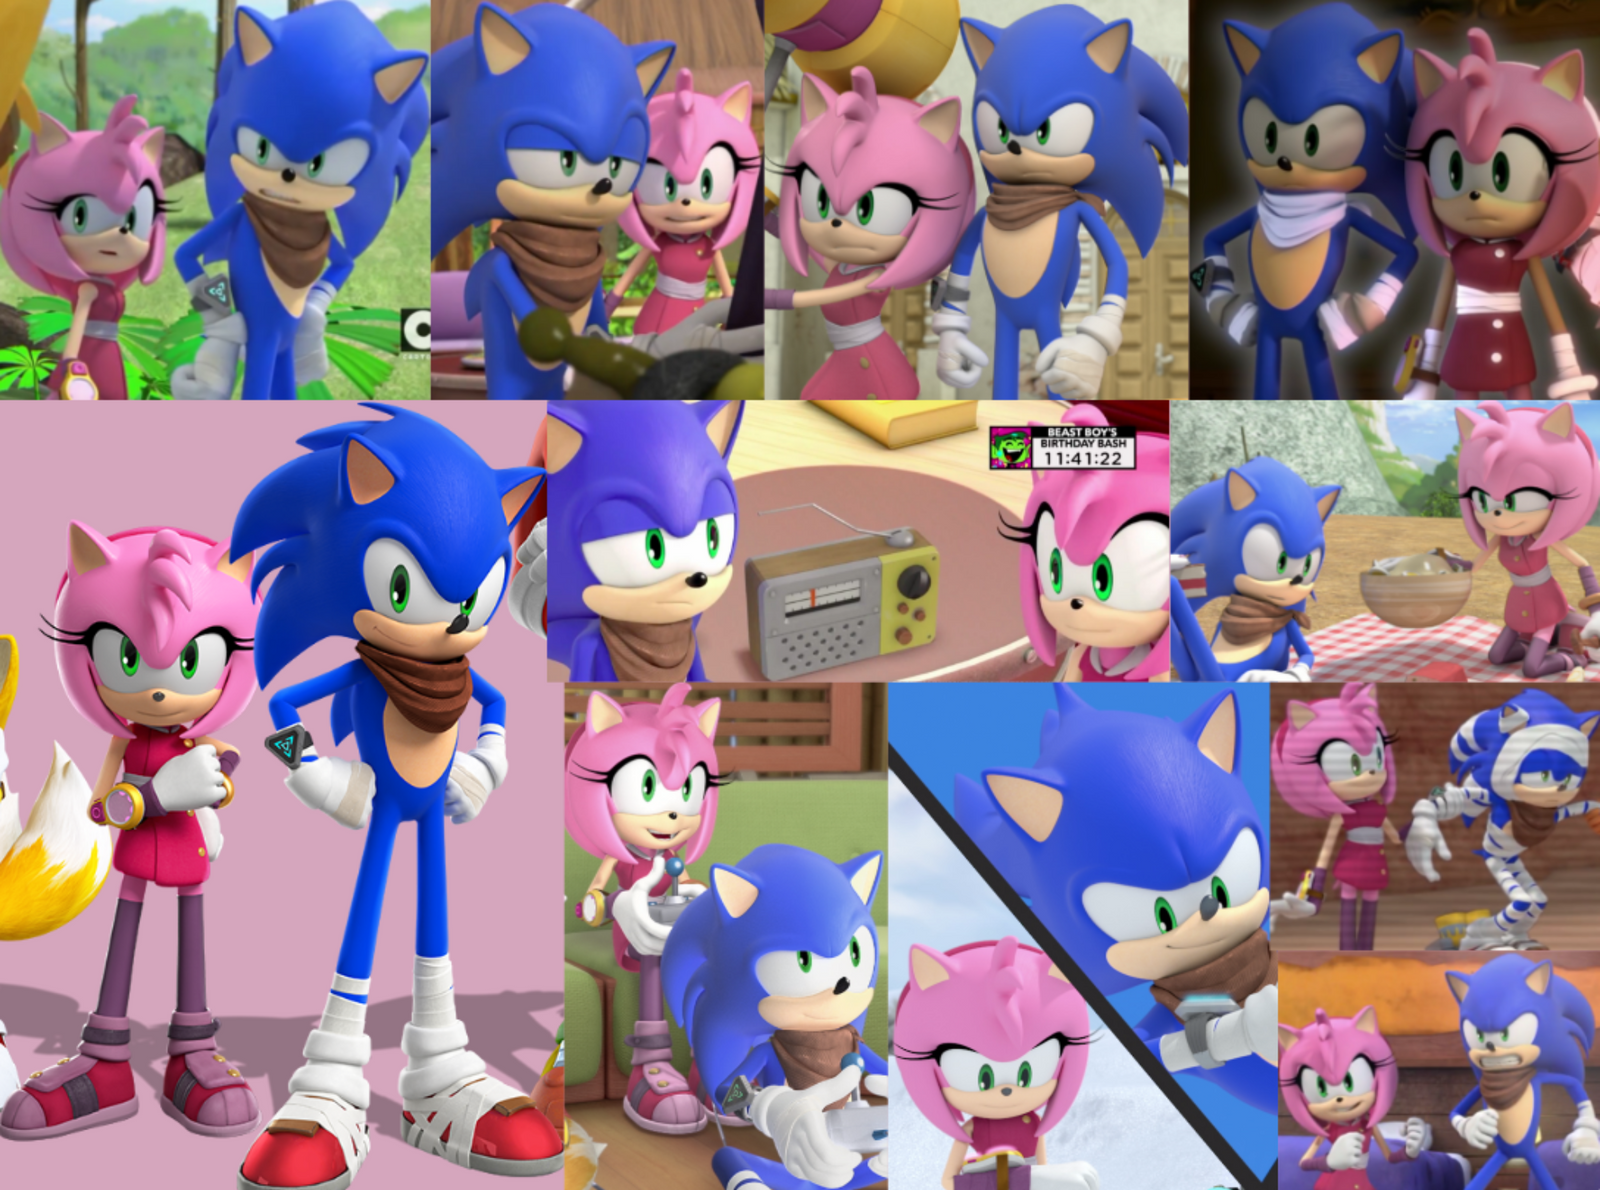 sonamy boom collage by sonicboomgirl23 on deviantart